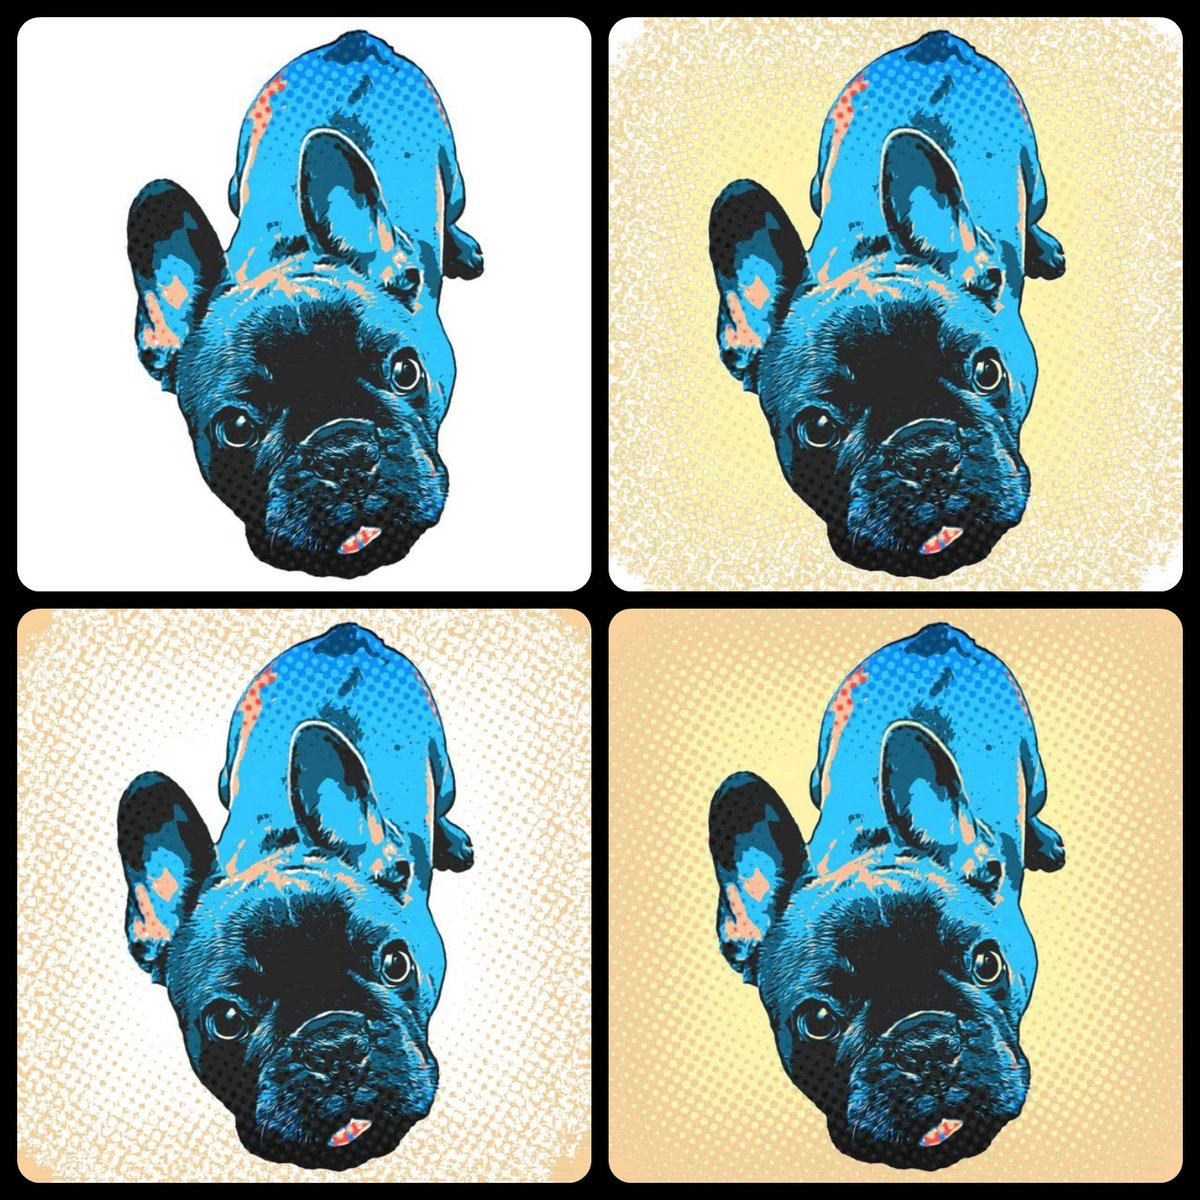 🐾 New graphics were made in Pop Art style. 👀  #BuckóFrenchie #FrenchBulldog #frenchie #puppylife #doglife #redbubble #popart #popartstyle🎨 #popartlover @redbubble